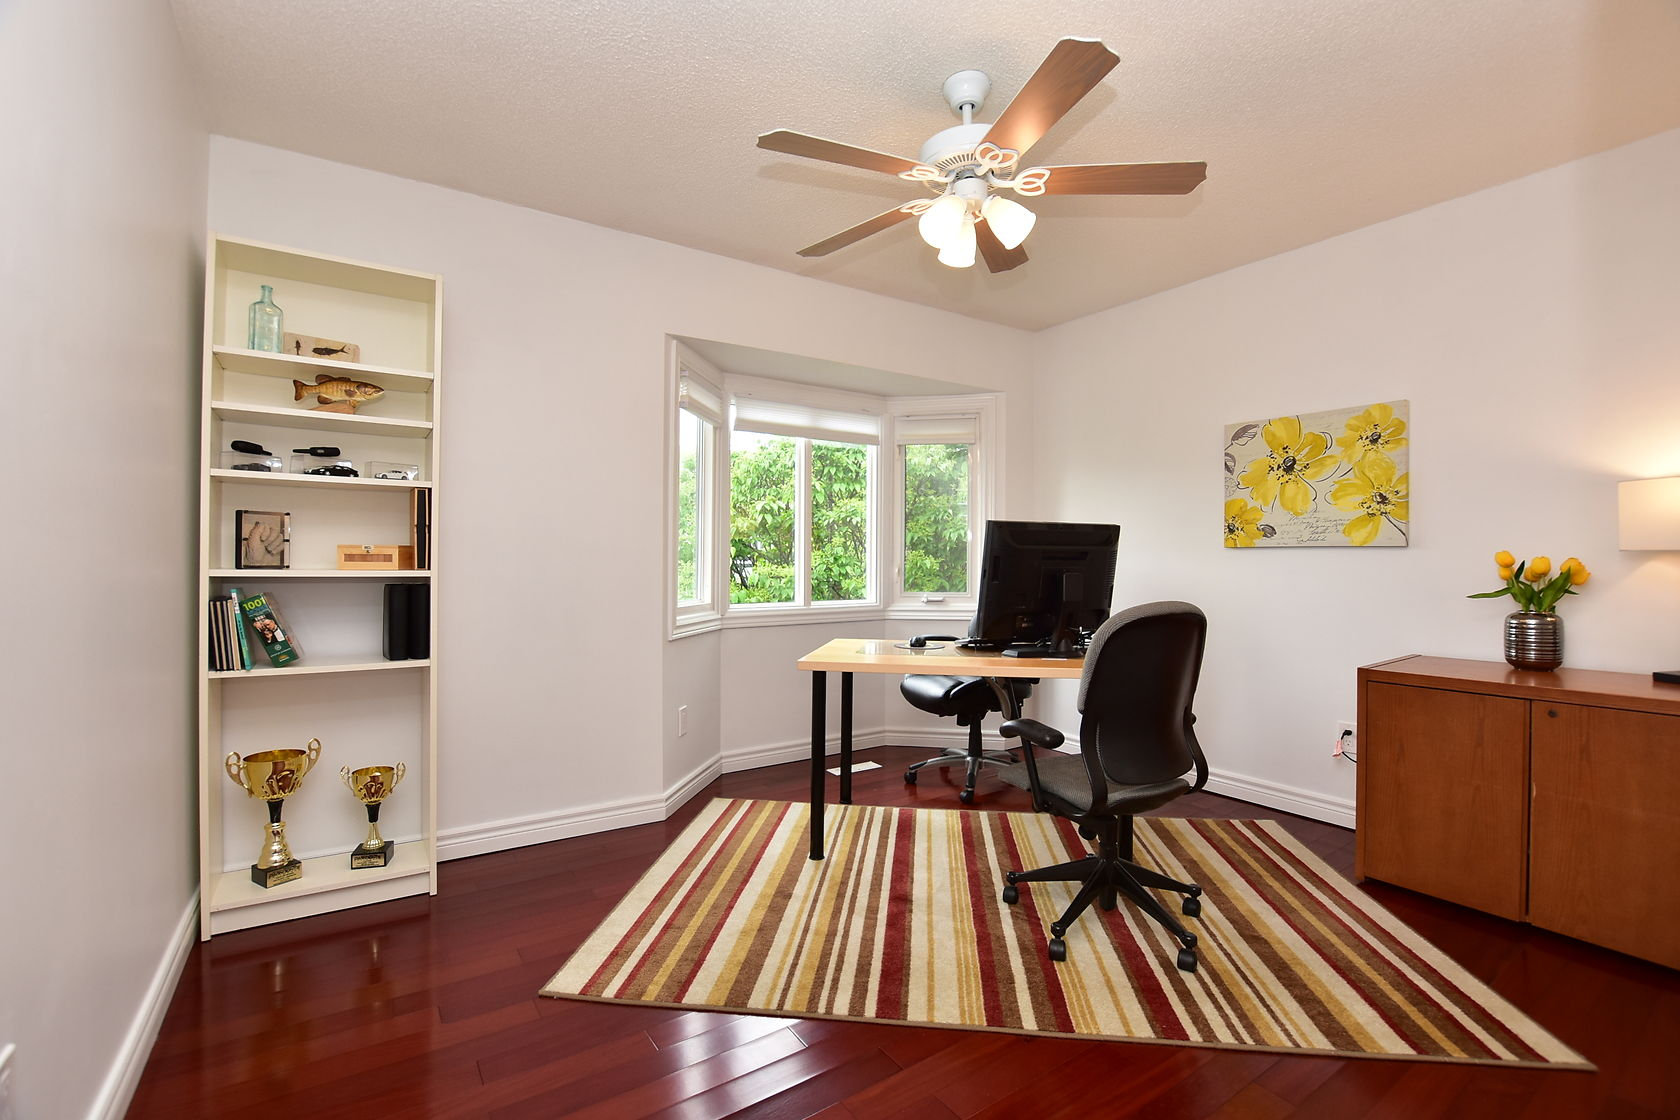 Home Staging and Styling Consult